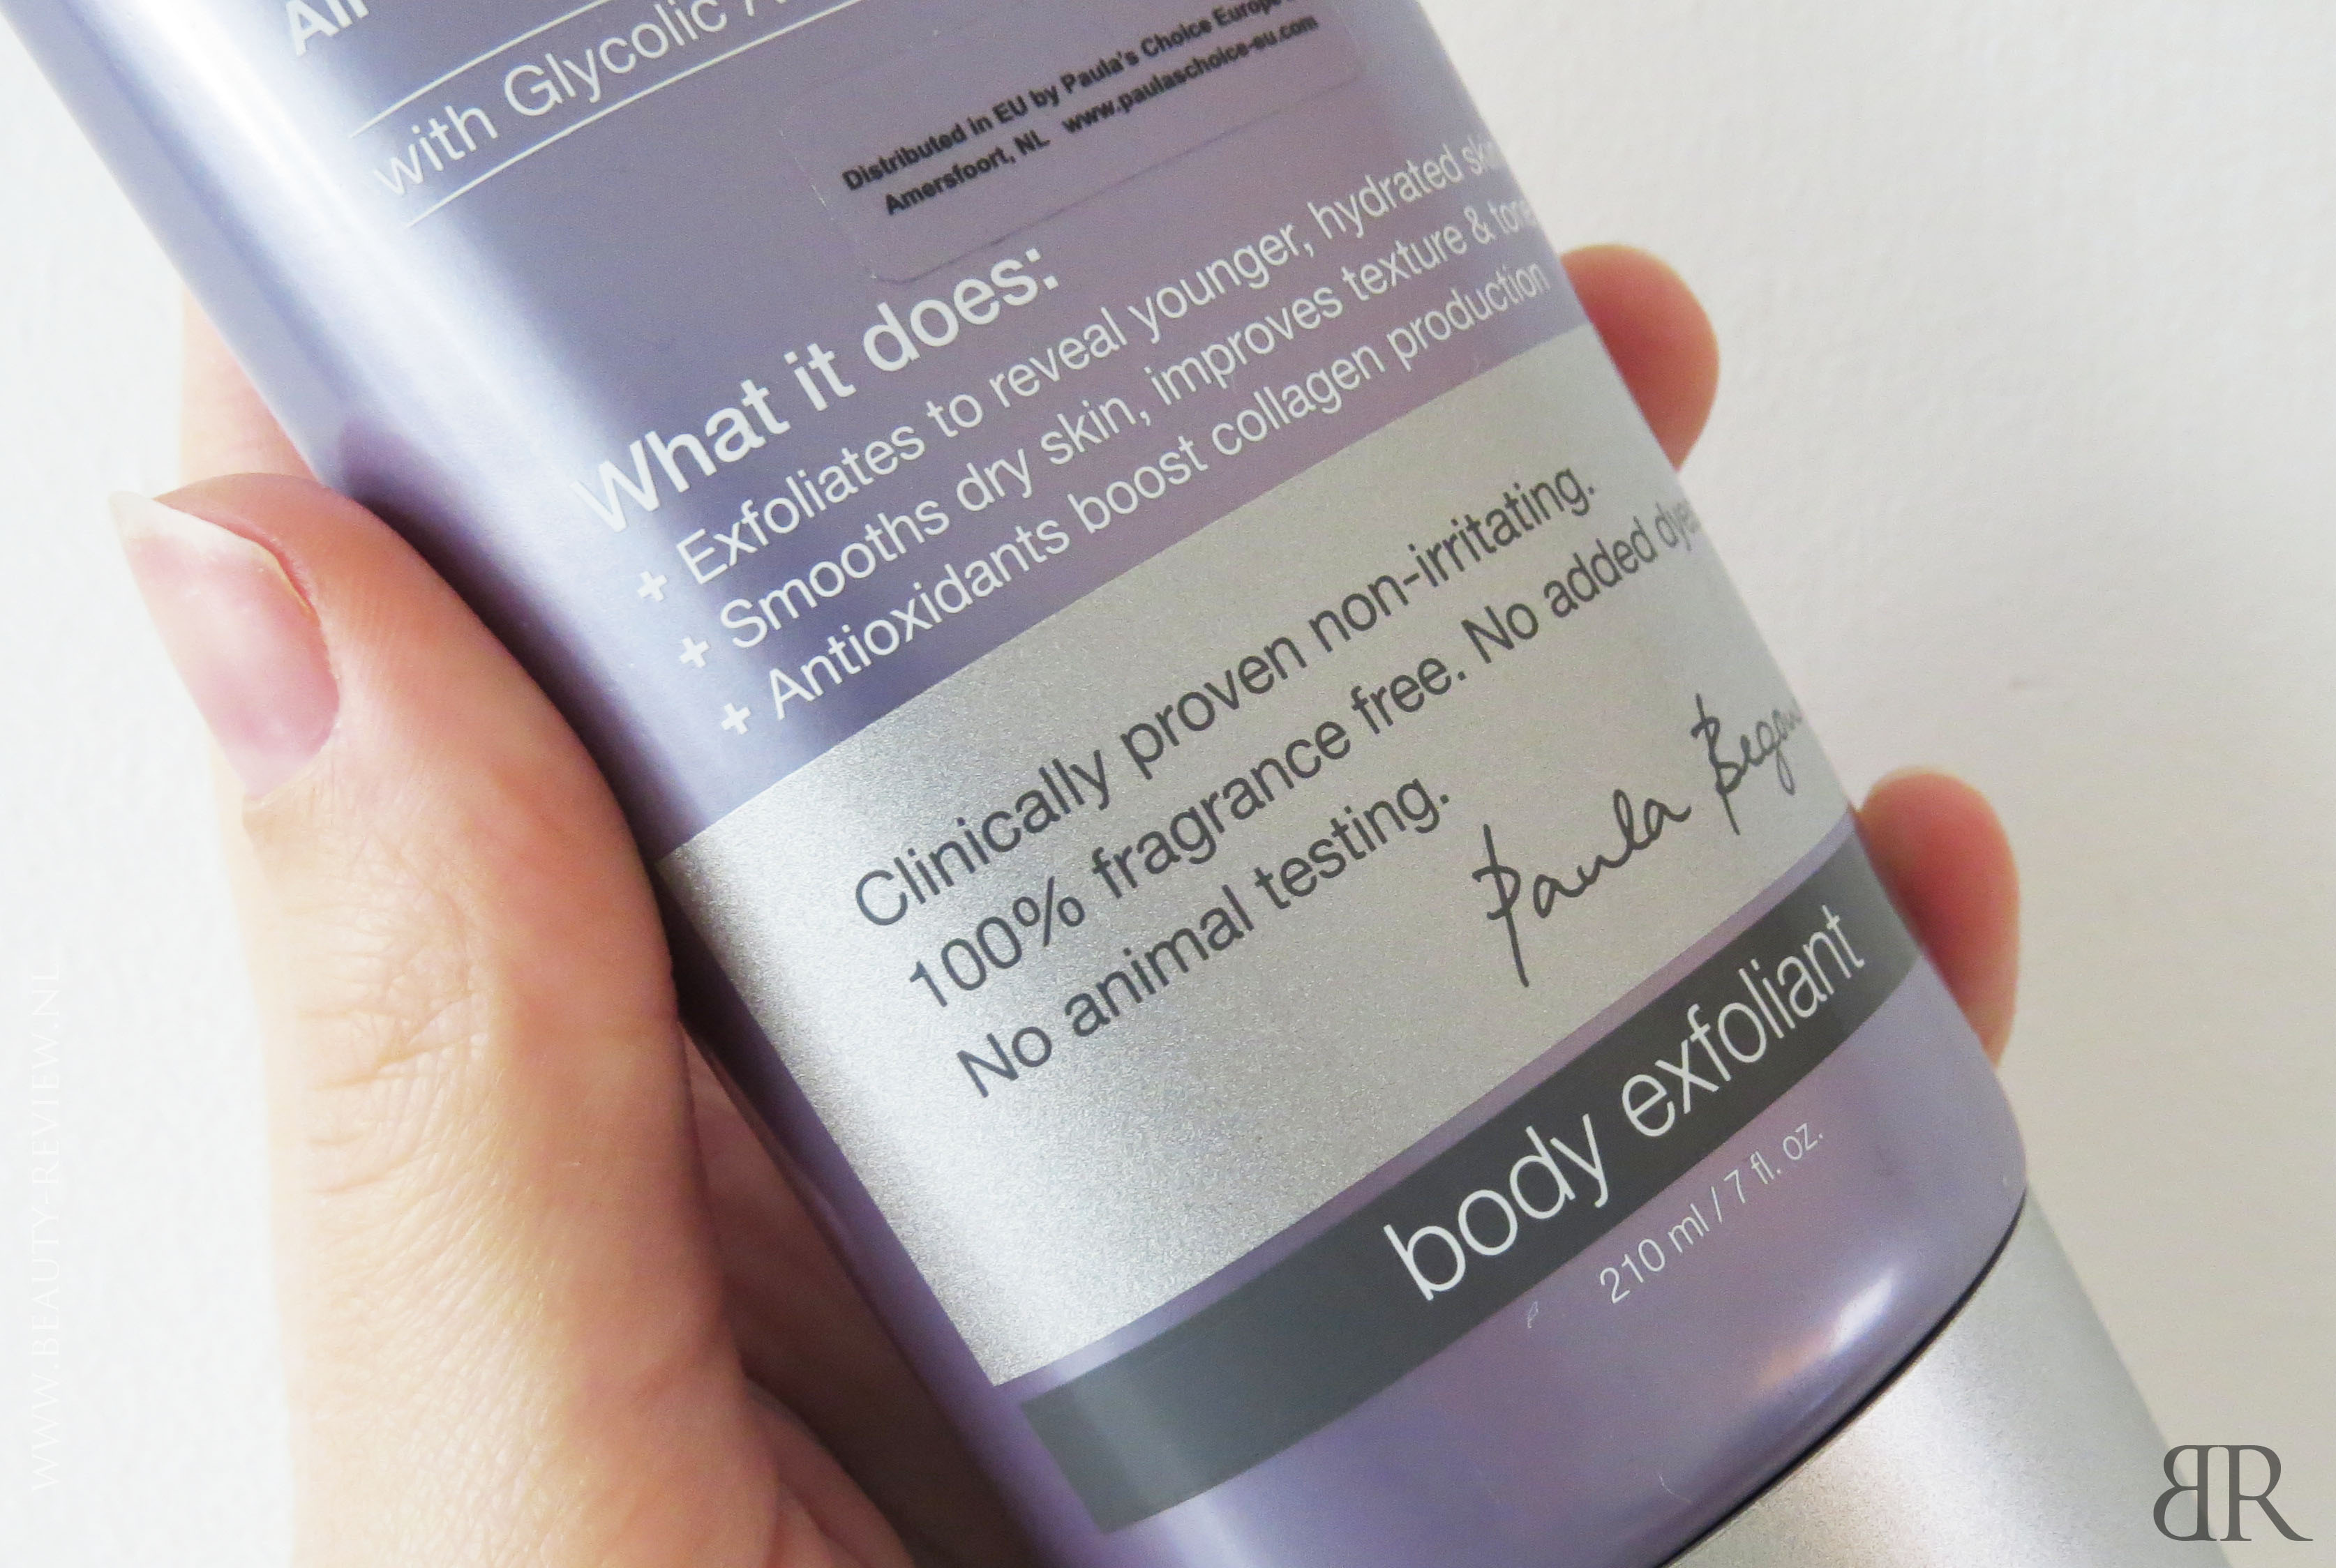 RESIST Skin Revealing Body Lotion 10 procent AHA cosmeticaclaims